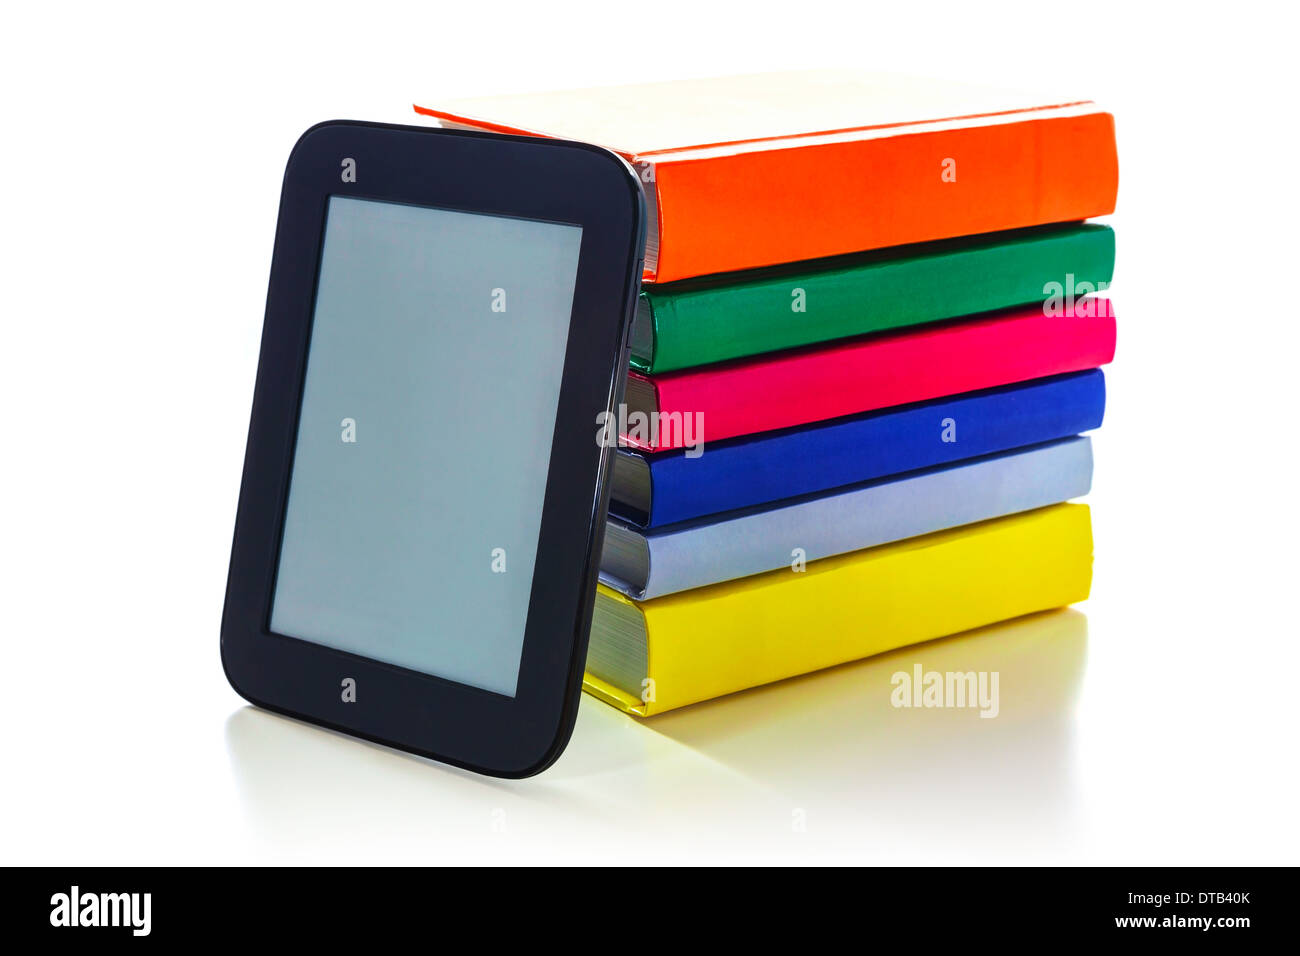 Electronic book reader with a pile of hard cover books - Stock Image